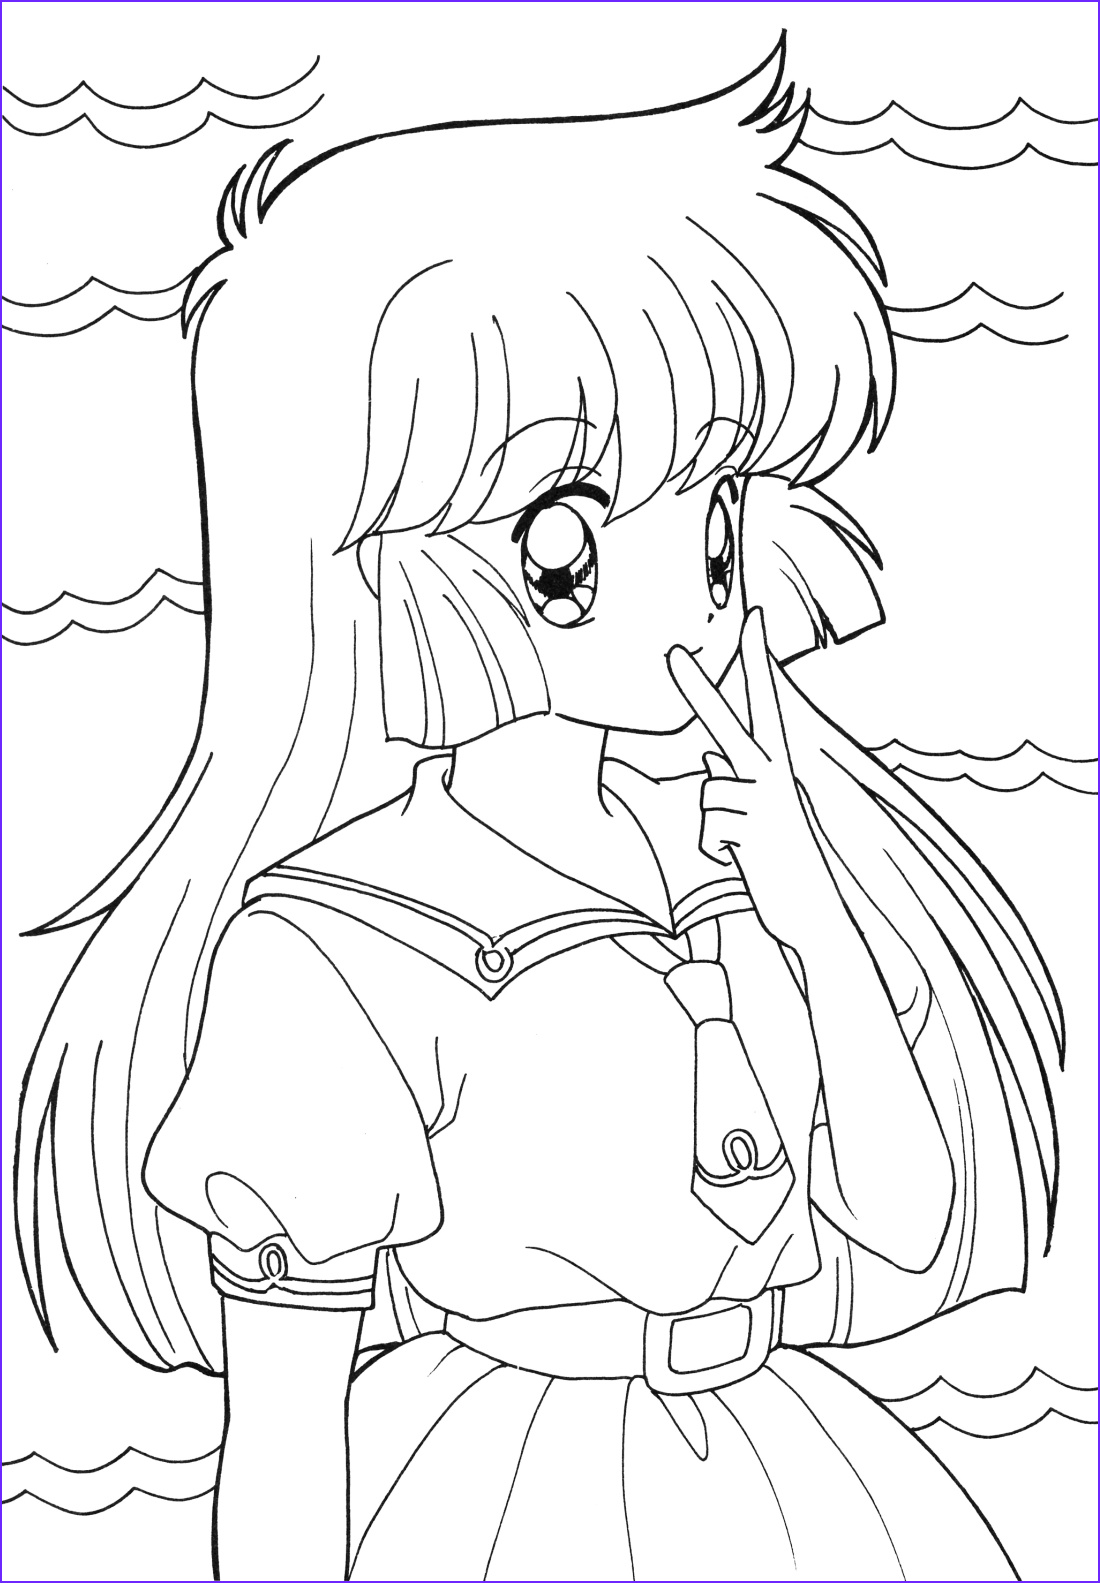 Cute Anime Coloring Pages Inspirational Photography Anime Coloring Pages Best Coloring Pages for Kids